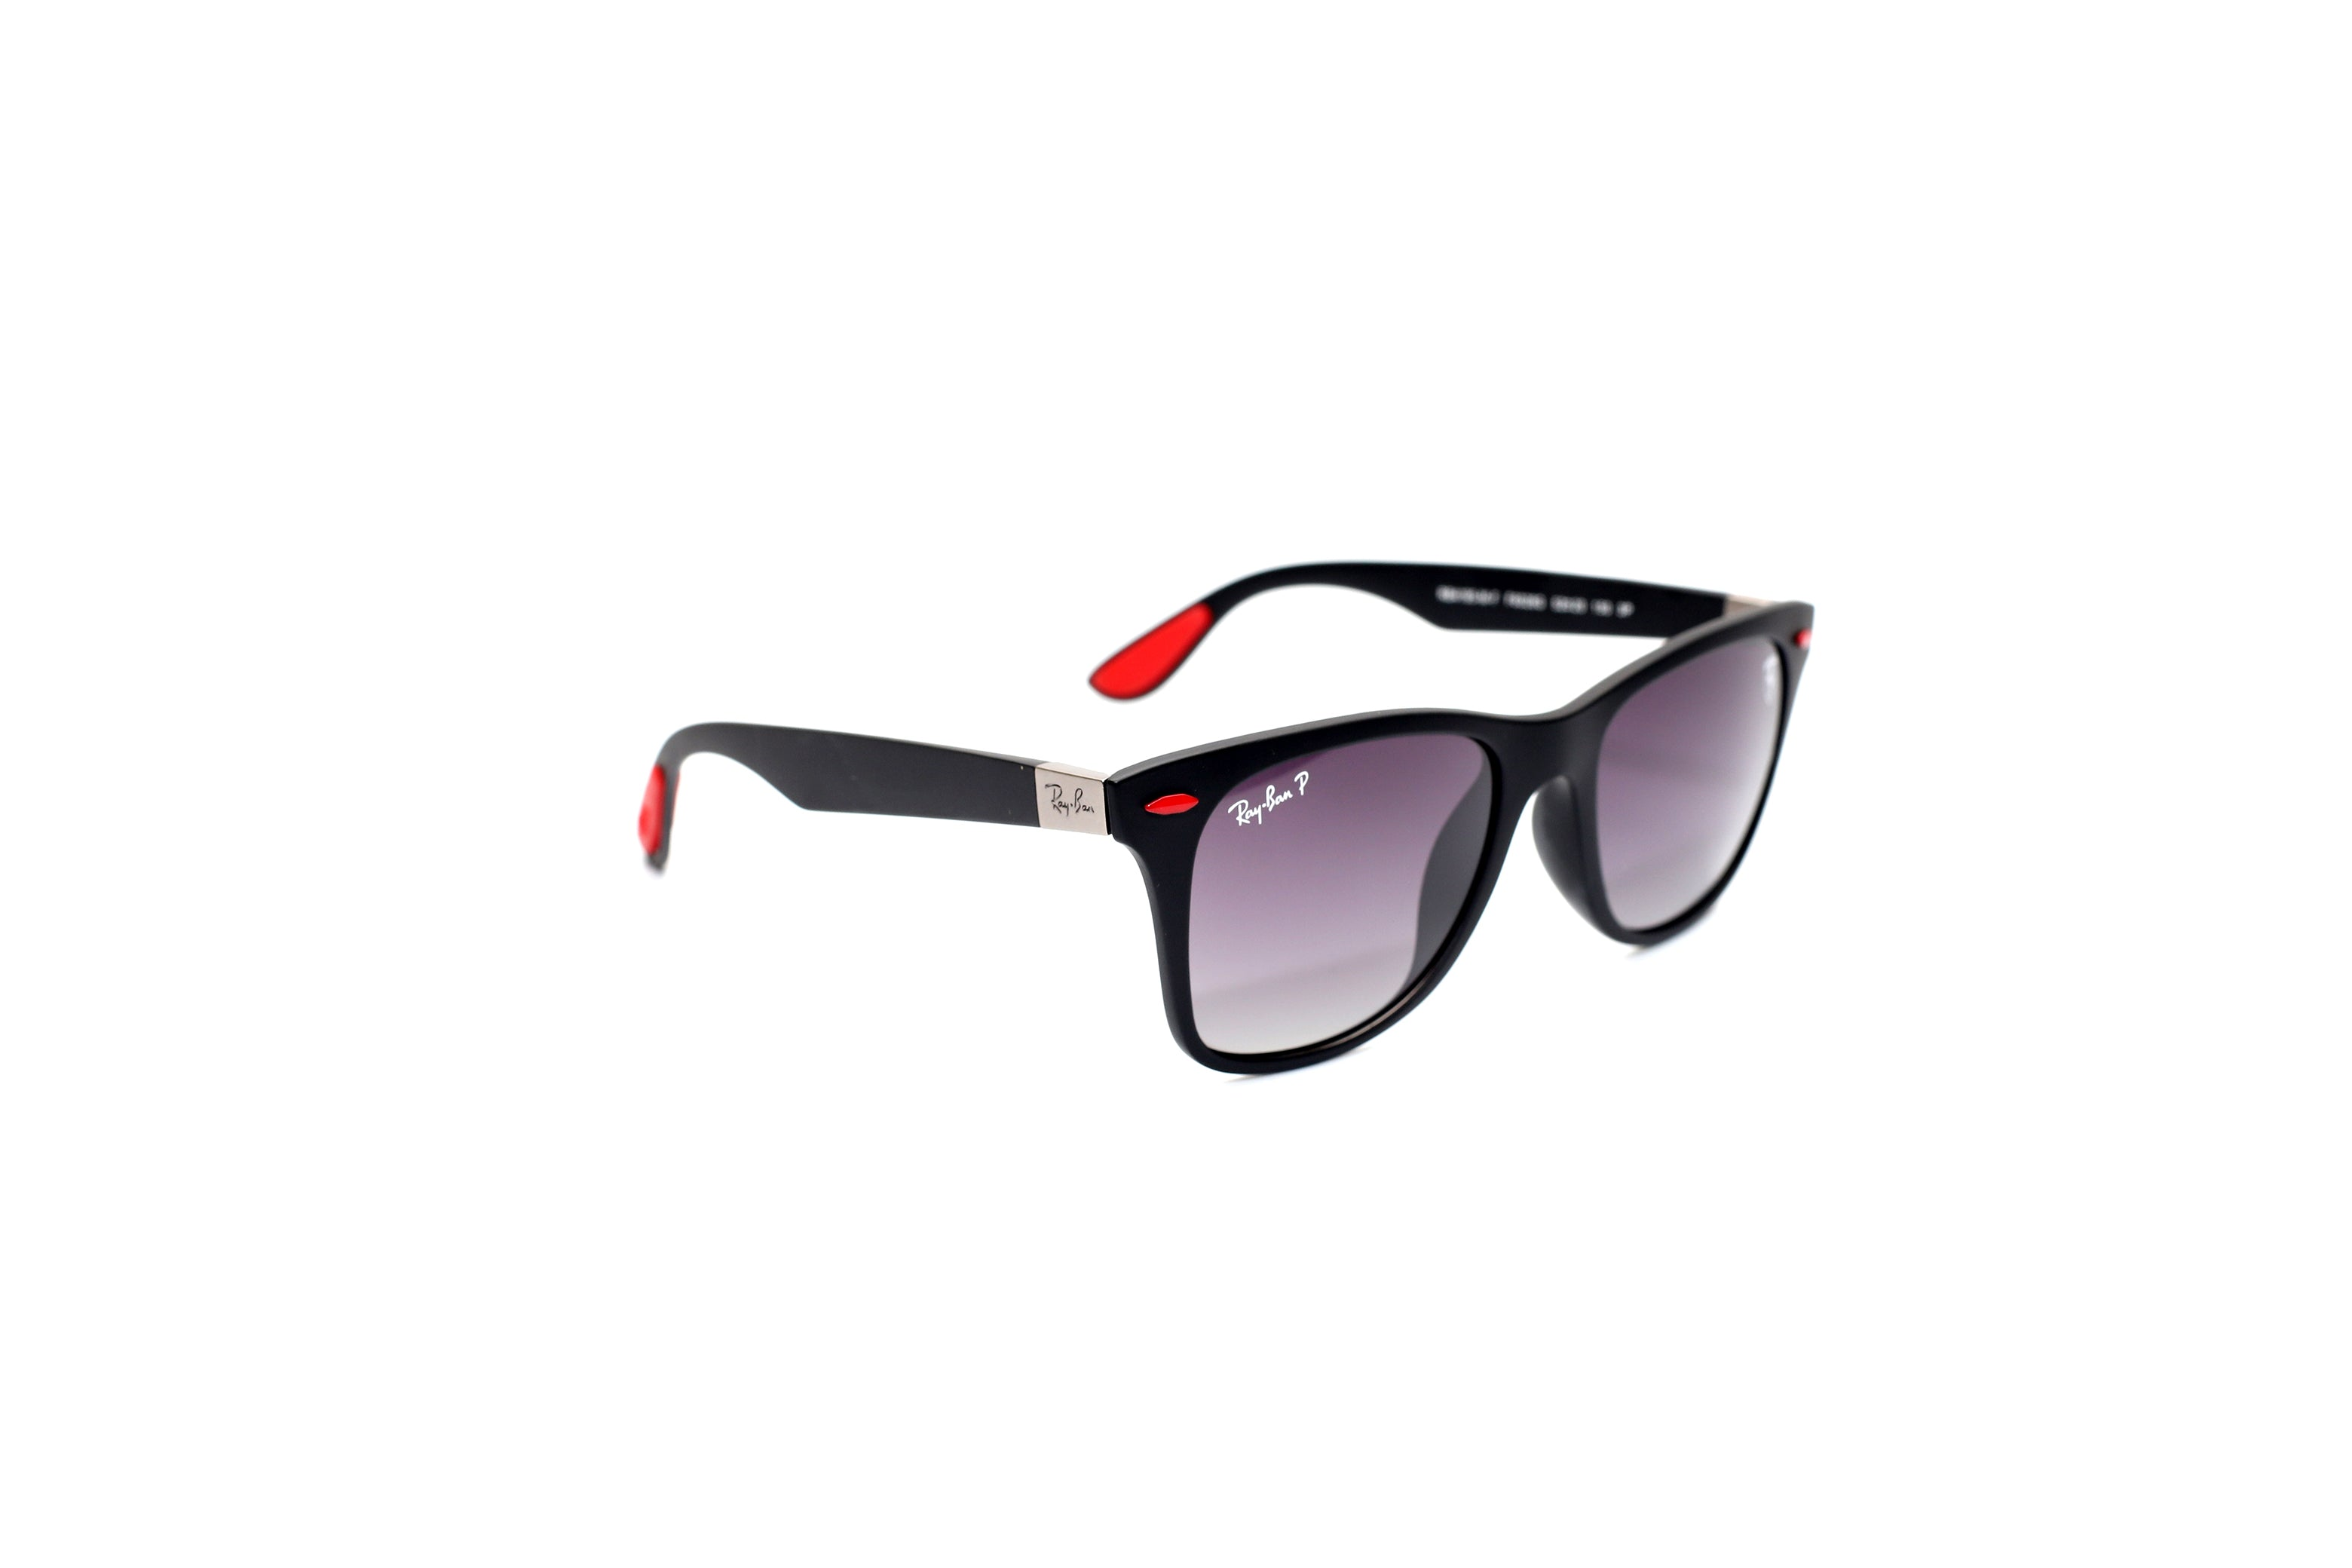 RB SF Wayfarer Sunglasses